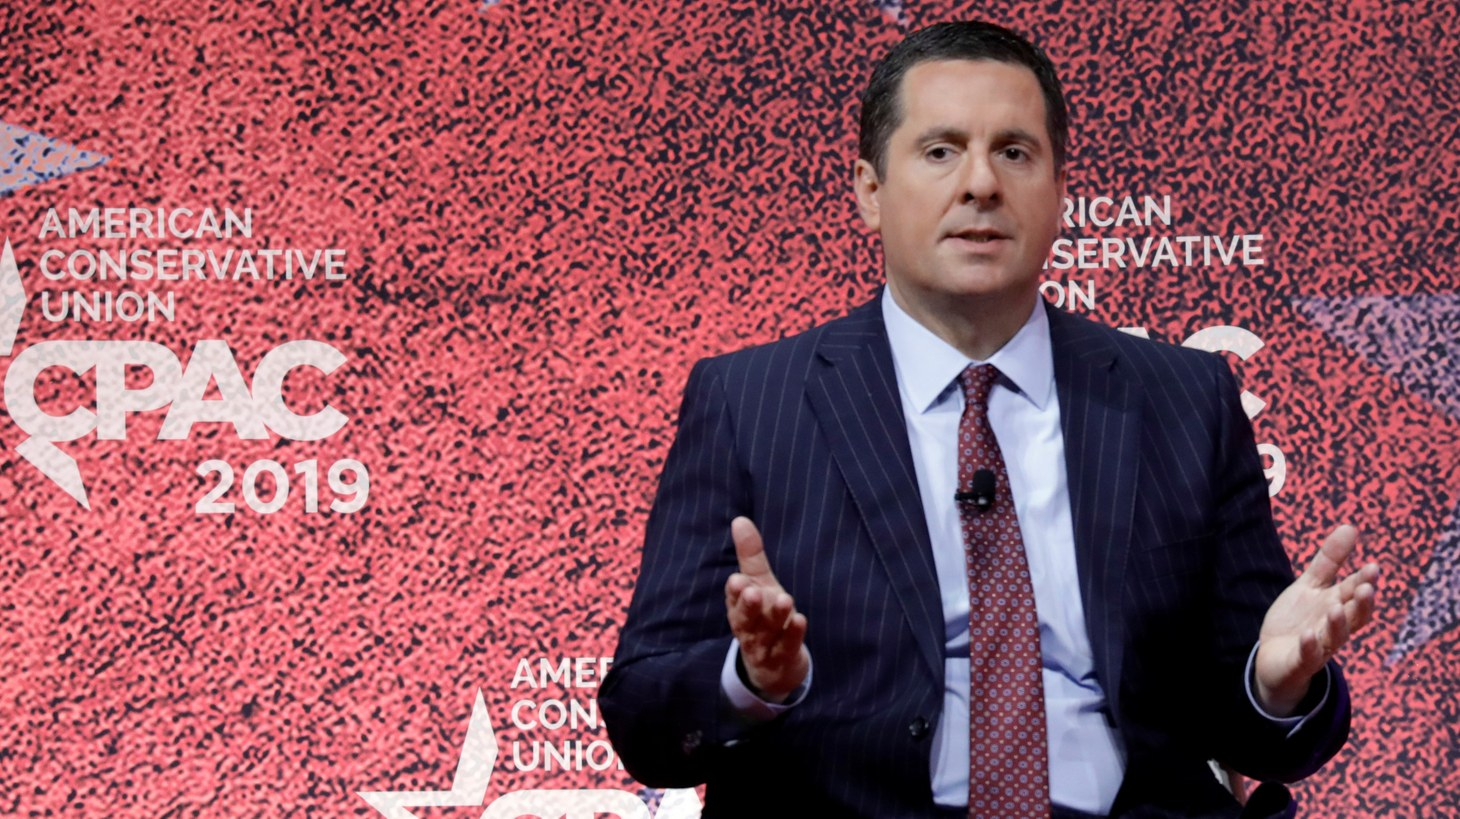 Rep. Devin Nunes (R-CA) speaks at the Conservative Political Action Conference (CPAC) at National Harbor in Oxon Hill, Maryland, U.S., March 1, 2019.